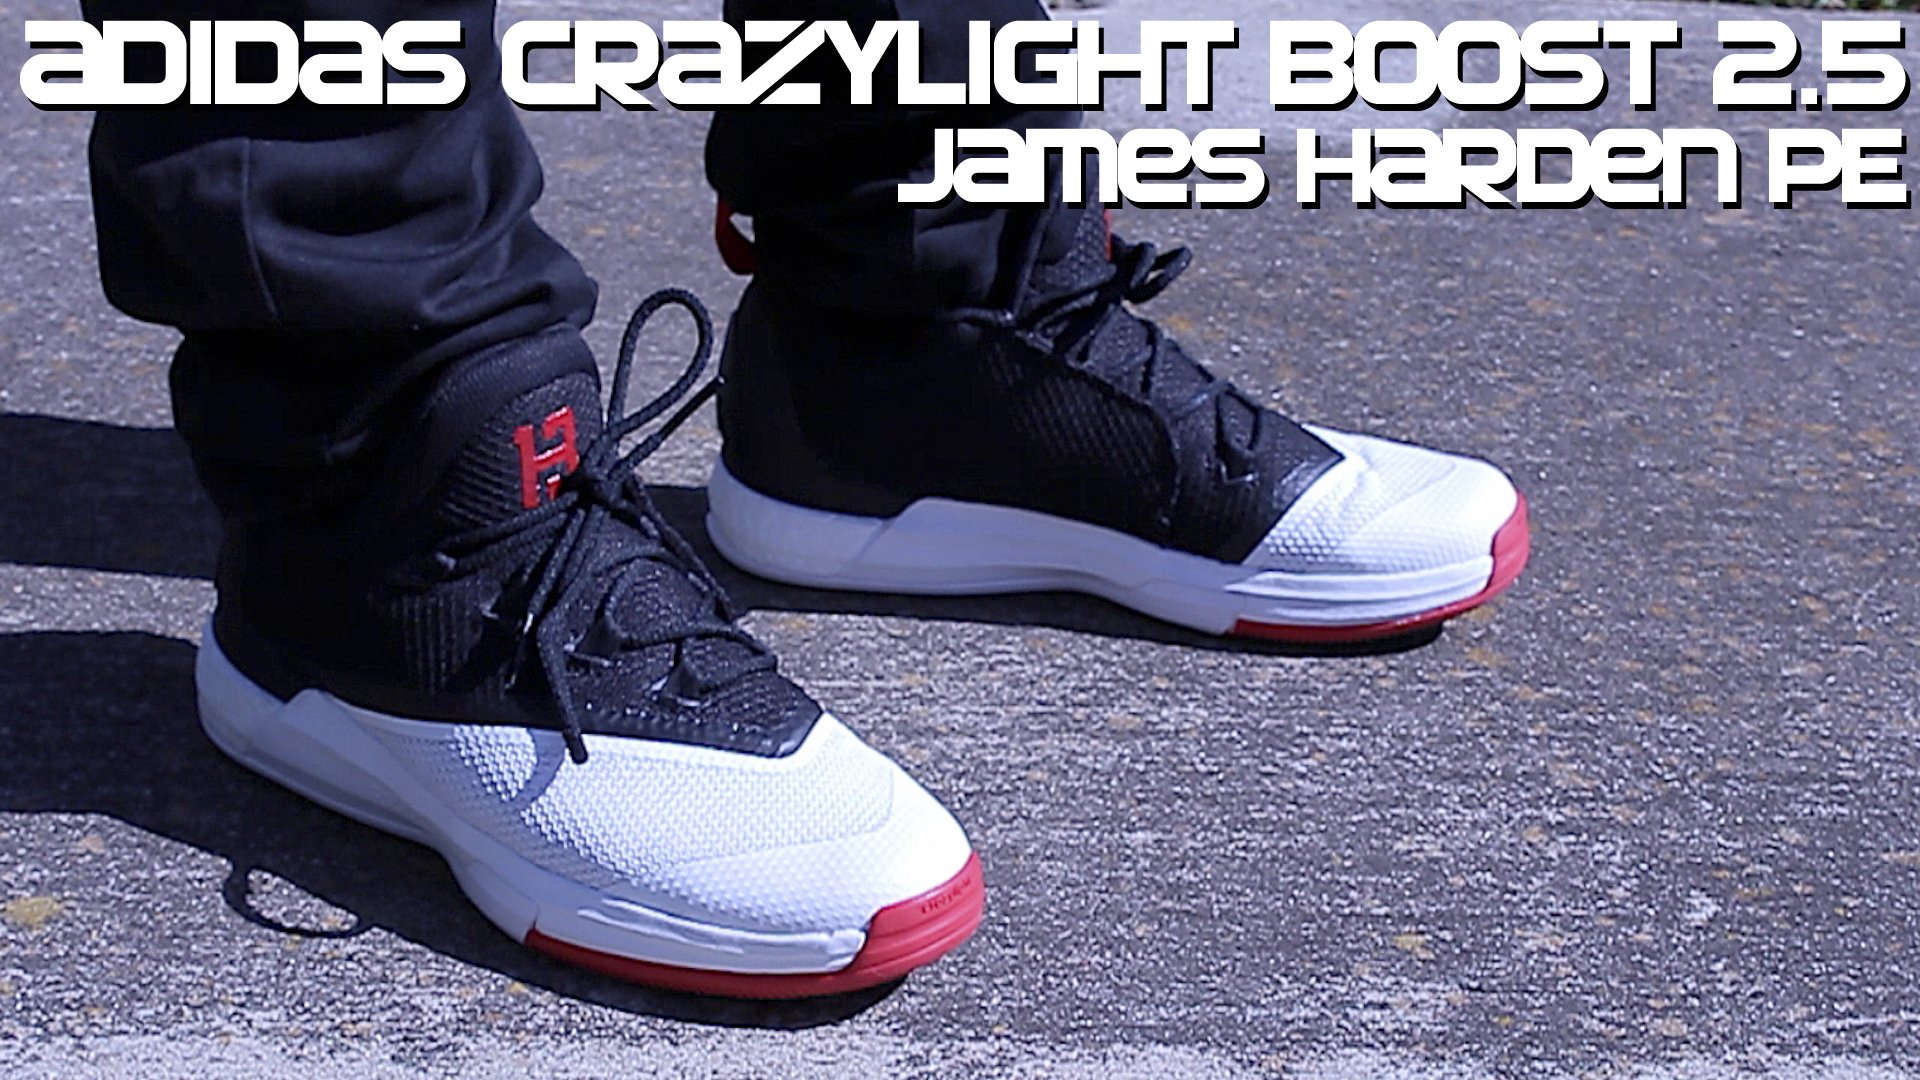 uk availability c0ce1 41130 adidas CrazyLight Boost 2.5 Low James Harden PE - Detailed R